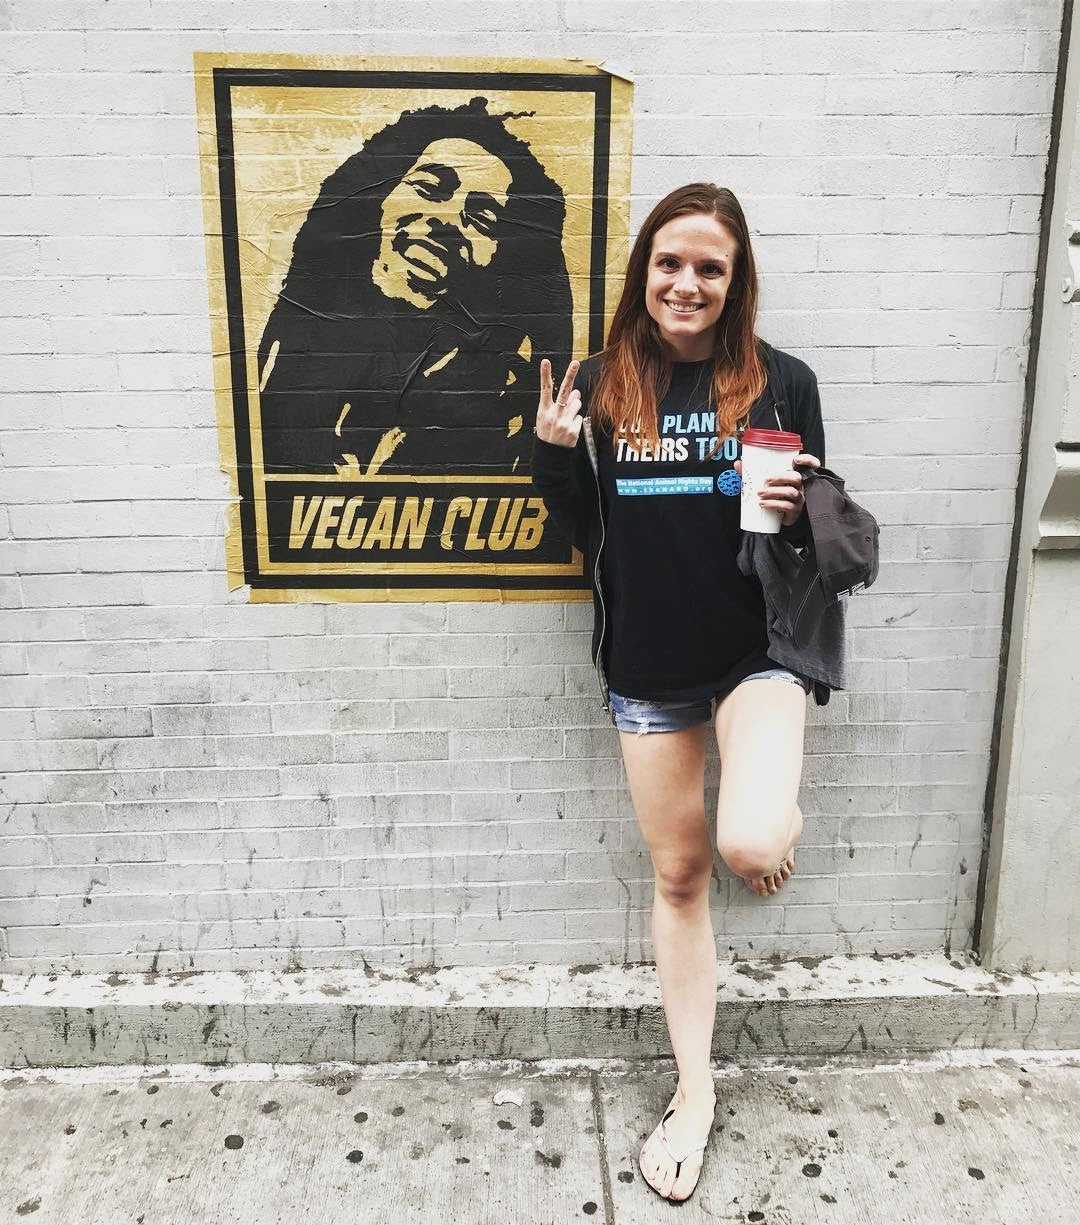 Street Art NewsPrint Poster Vegan Club feat the Rastafari boss of Reggae, Bob Marley signed L3F0u - @mere_rose @metalessmanhattan @loftlifeblog @nickthevegan